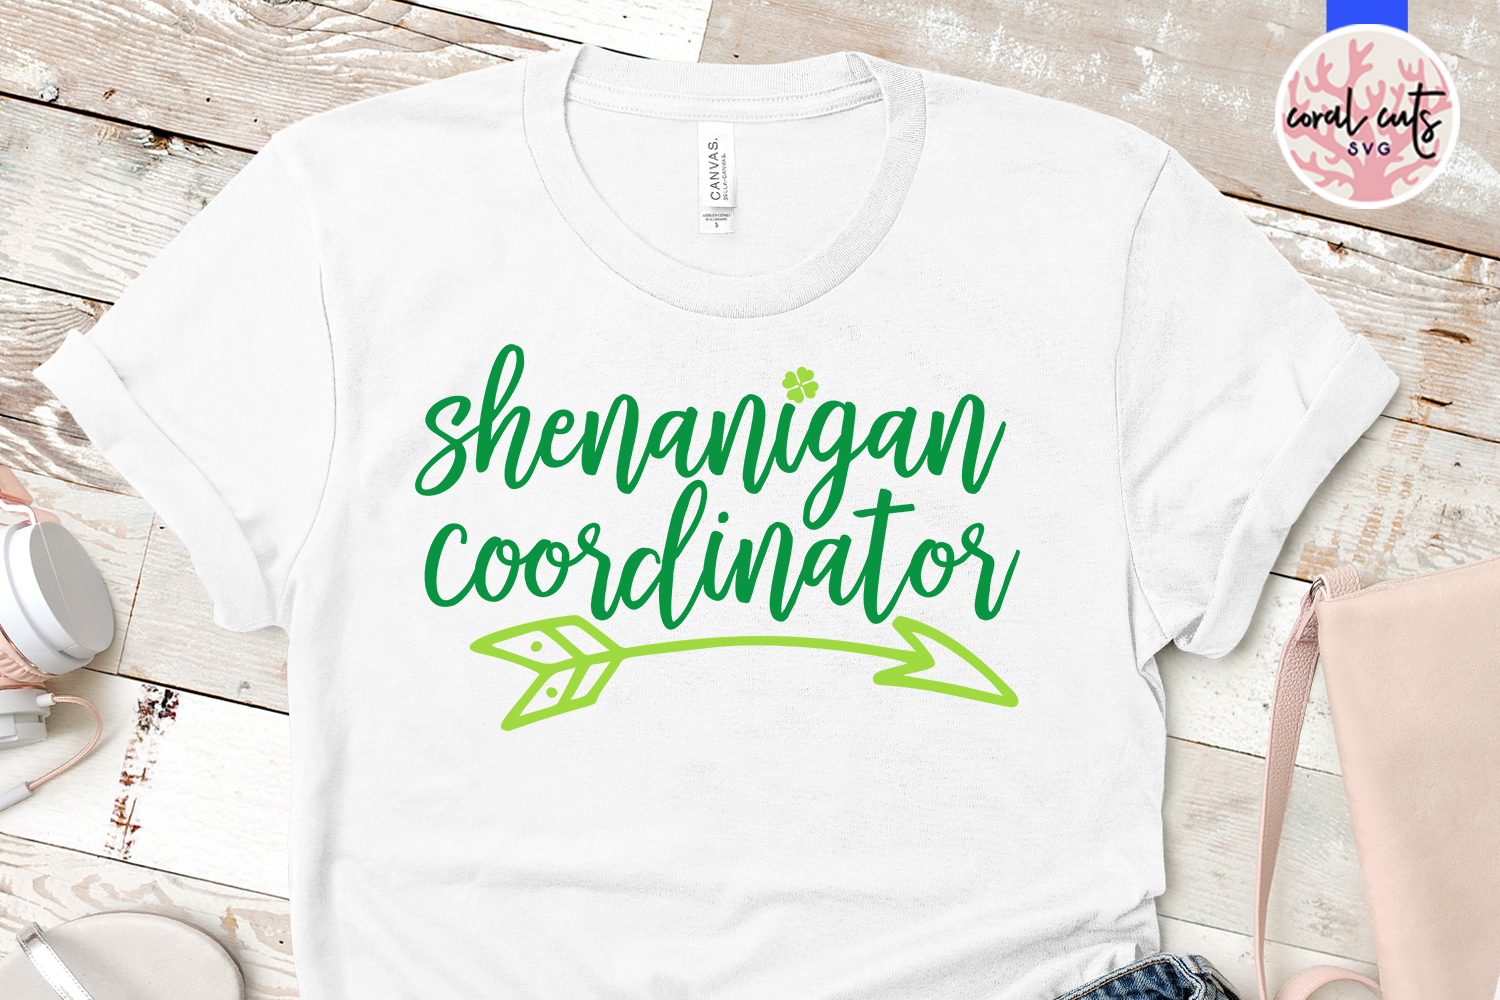 Shenanigan coordinator - St. Patrick's Day SVG EPS DXF PNG example image 2